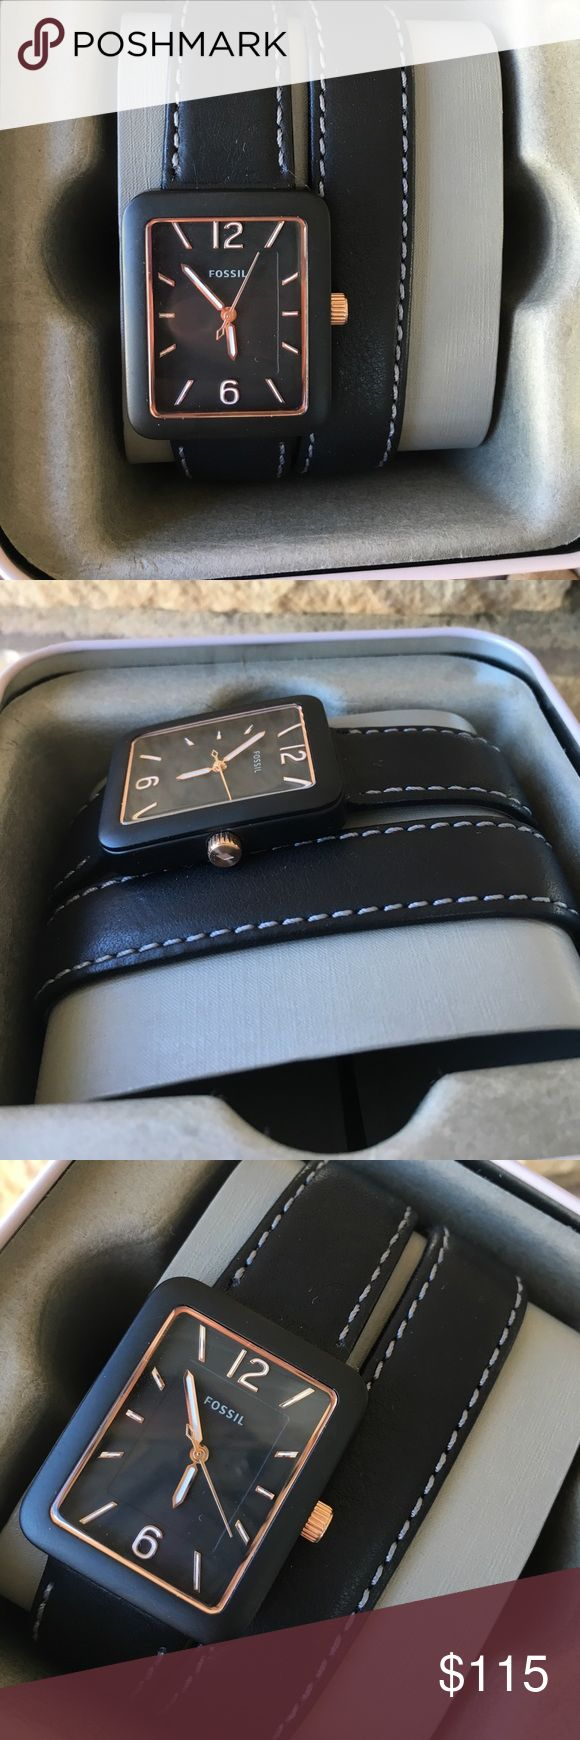 Fossil black leather wrap watch NIBWT ES4193 New in box with tags and warranty booklet! Fossil black leather double wrap black strap with buckle closure. Style #: ES4193. Rectangle face. Rose gold and white markers and accents. Open to reasonable offers; NO TRADES. Fossil Accessories Watches